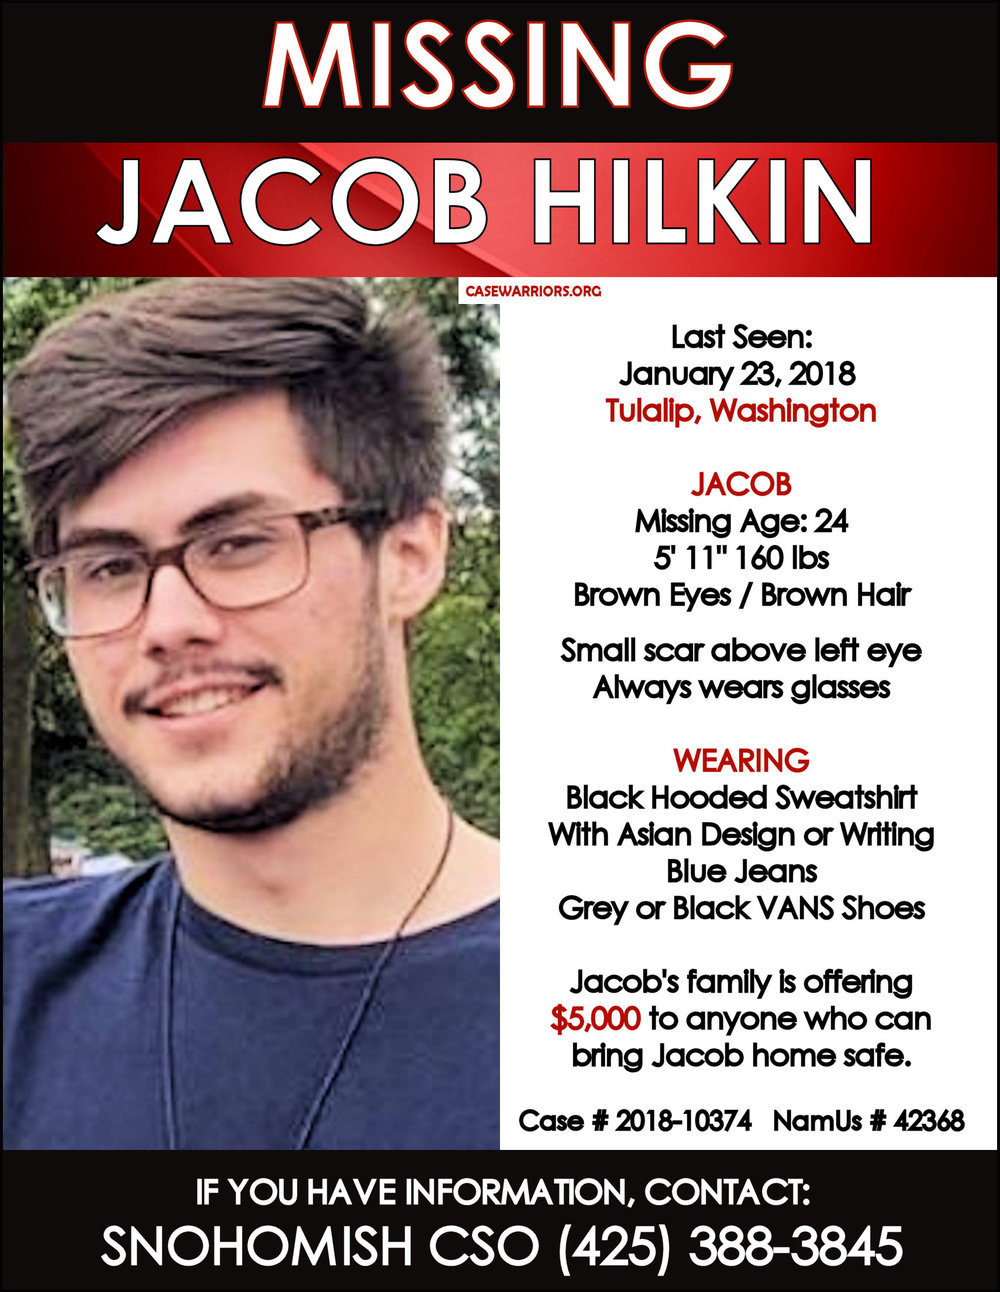 JACOB HILKIN